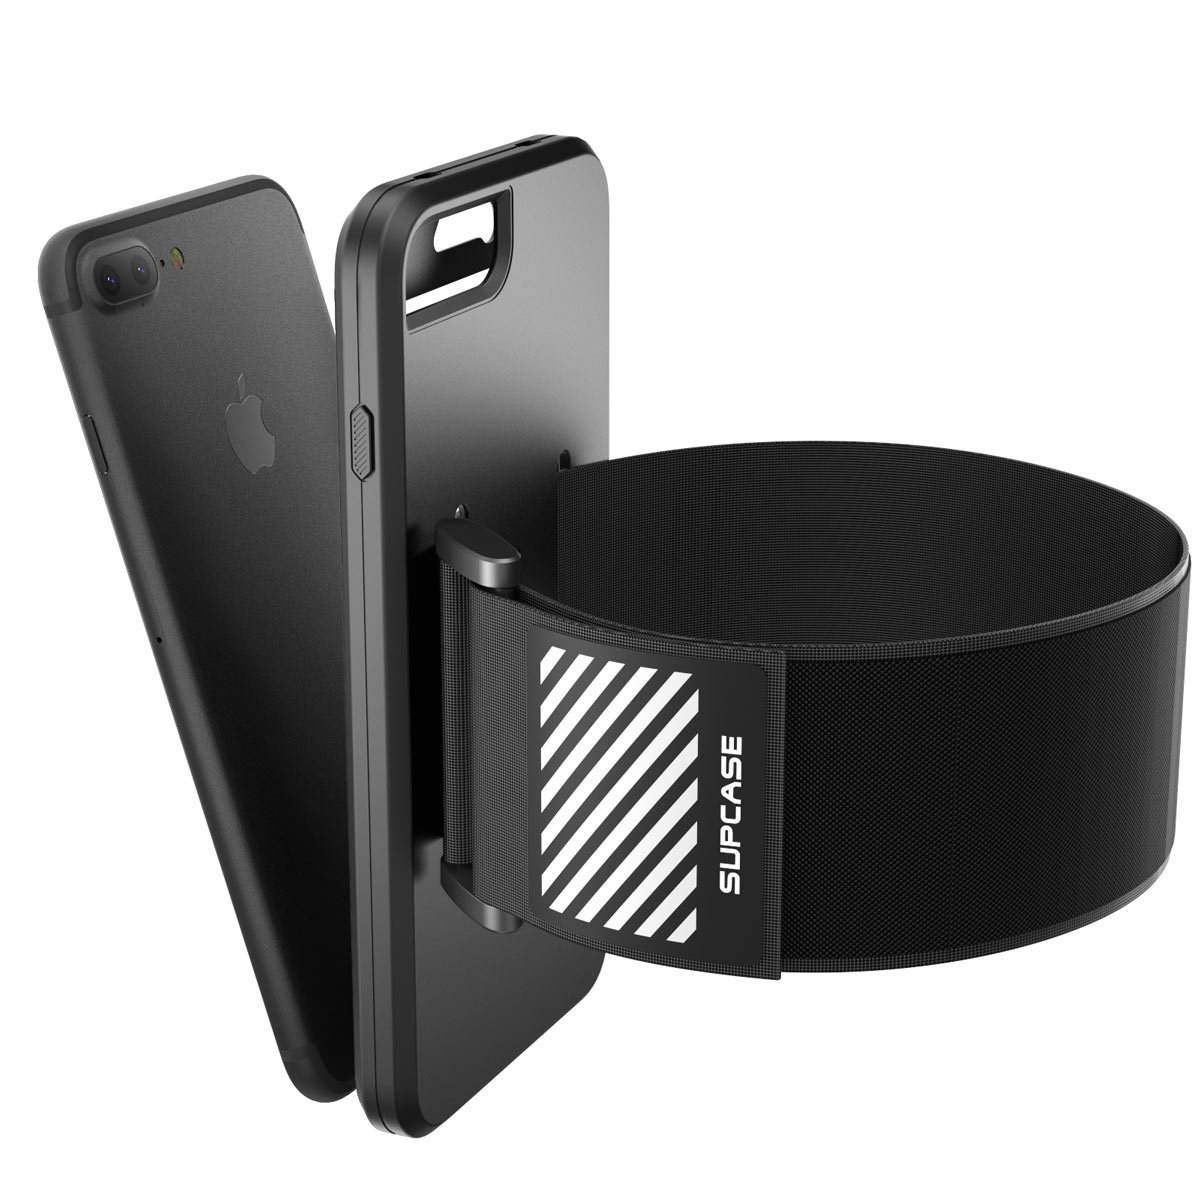 iPhone 7 Plus Armband, iPhone 8 Plus Armband, SUPCASE Easy Fitting Sport Running Armband Case with Premium Flexible Case Combo for Apple iPhone 7 Plus 2016 / iPhone 8 Plus 2017 (Black) by SUPCASE (Image #4)